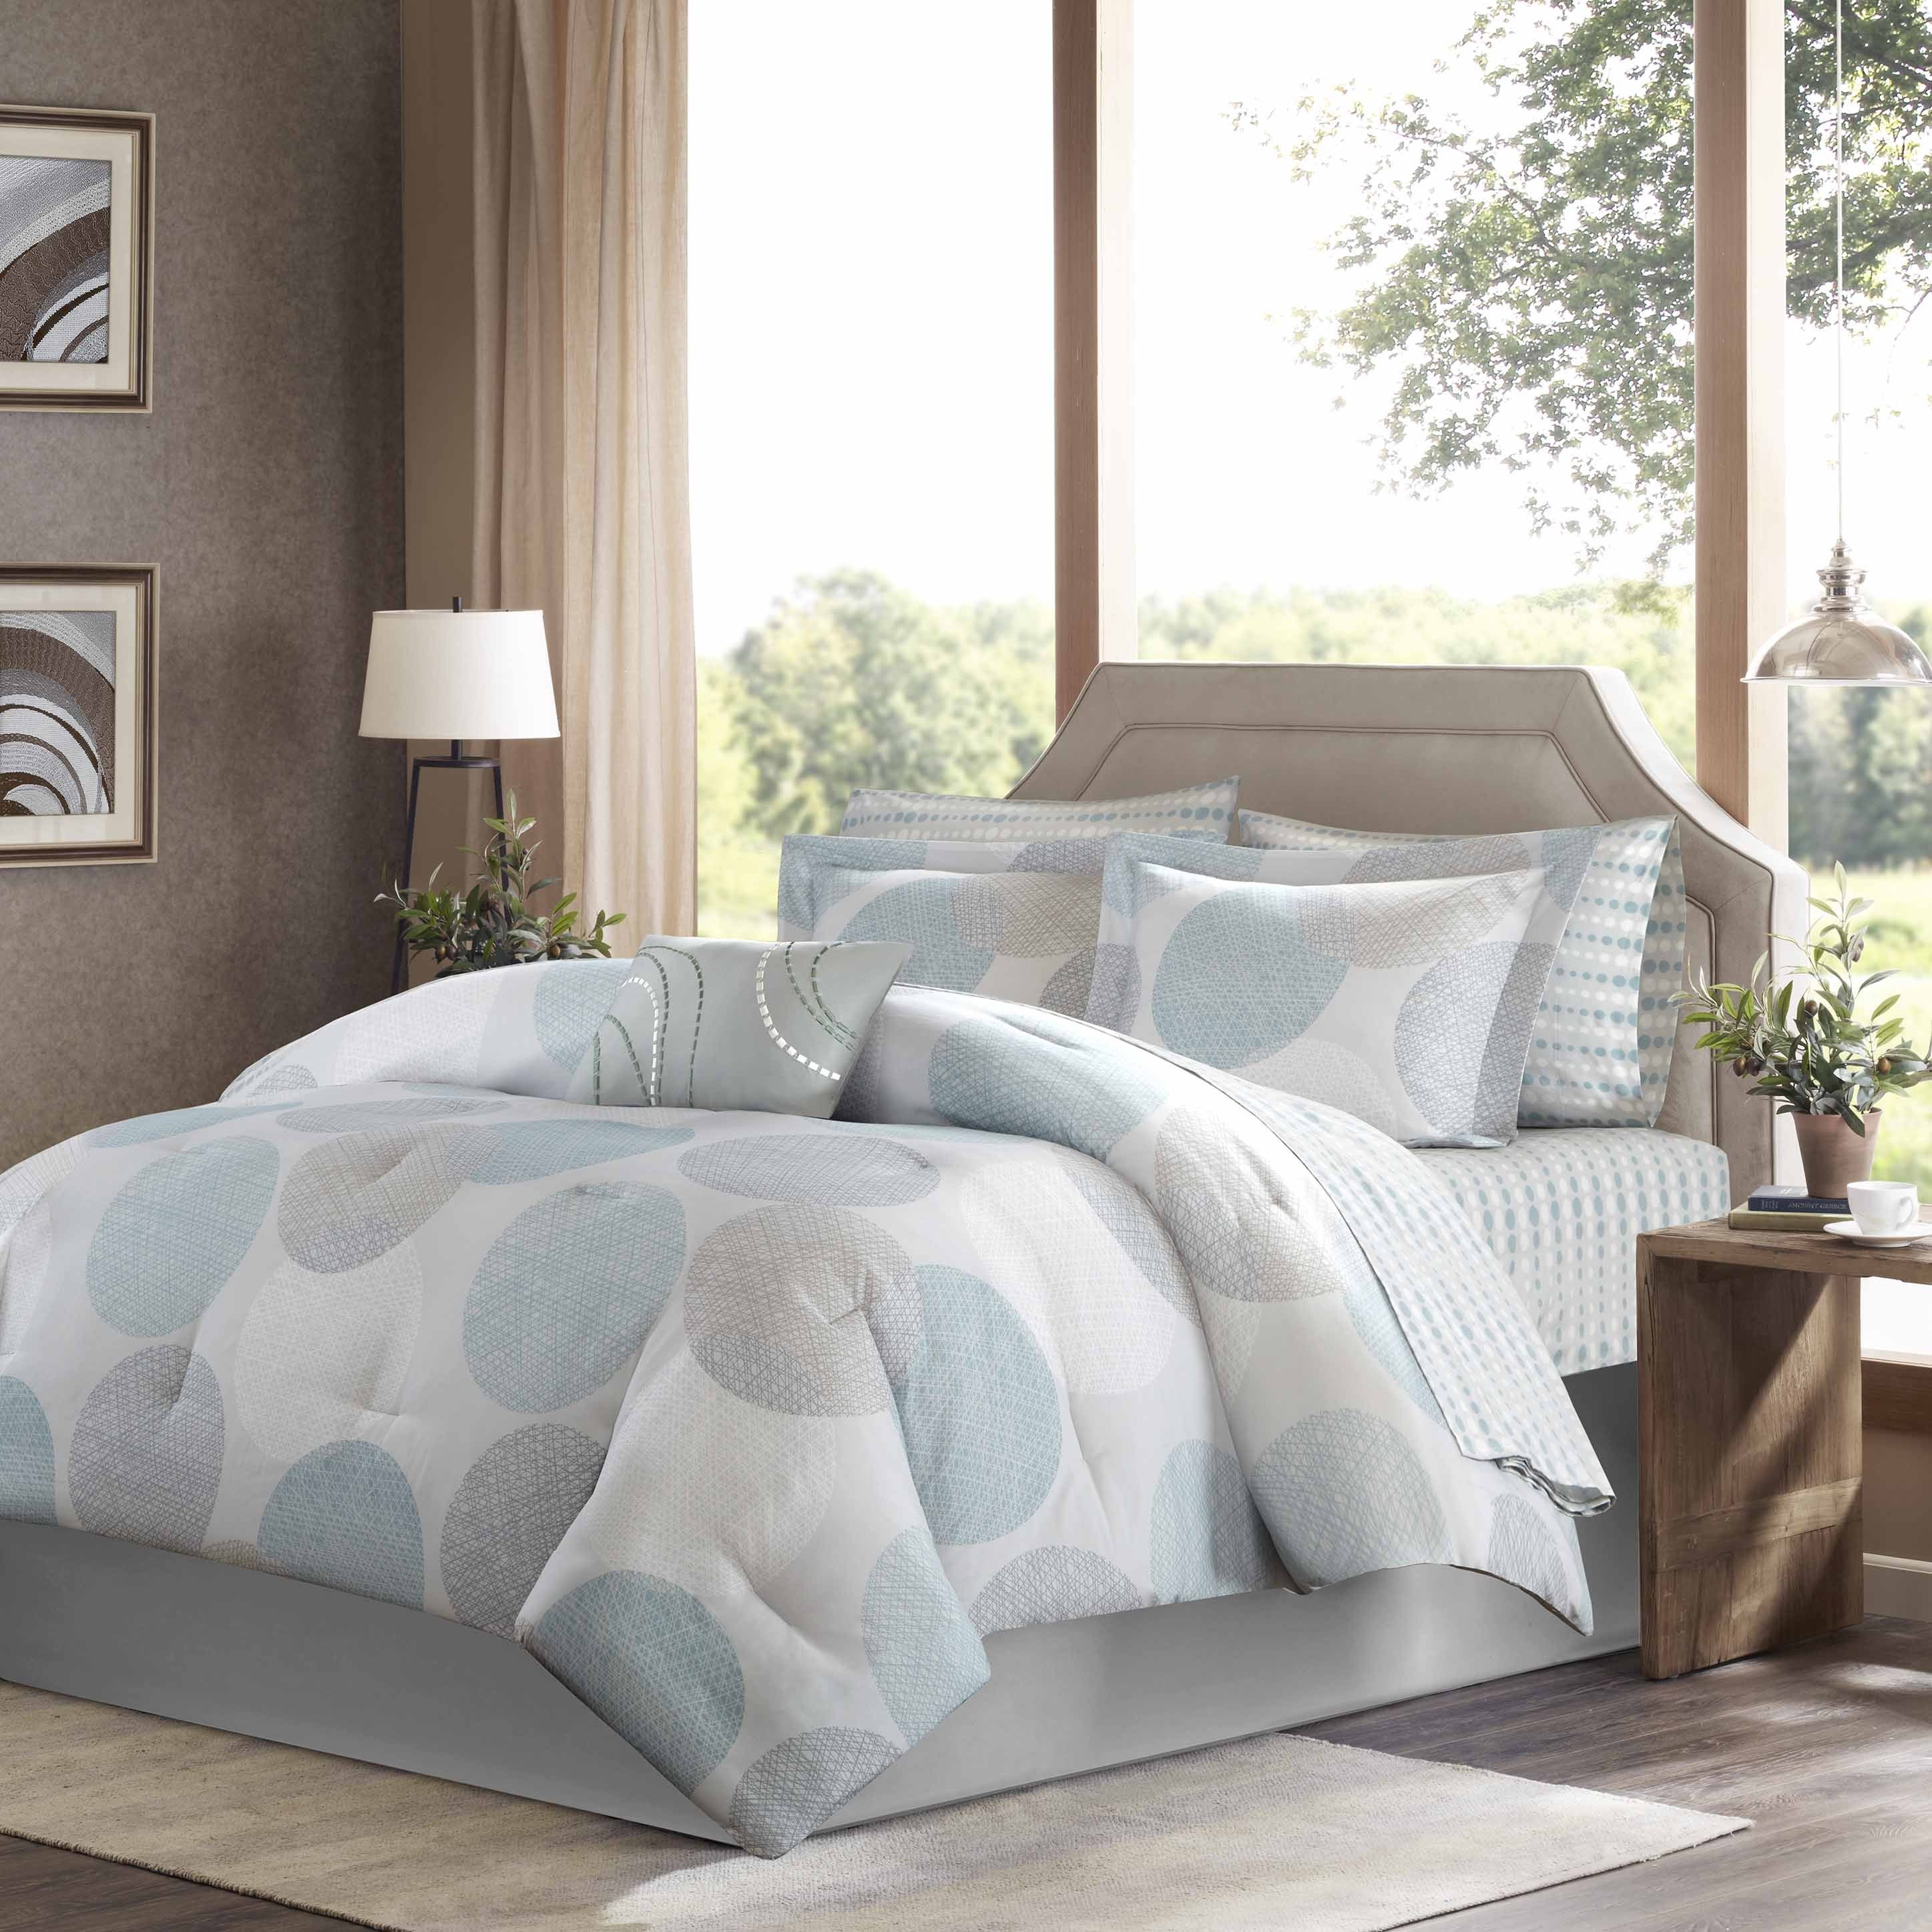 Home Essence Cabrillo Bed in a Bag Comforter Bedding Set